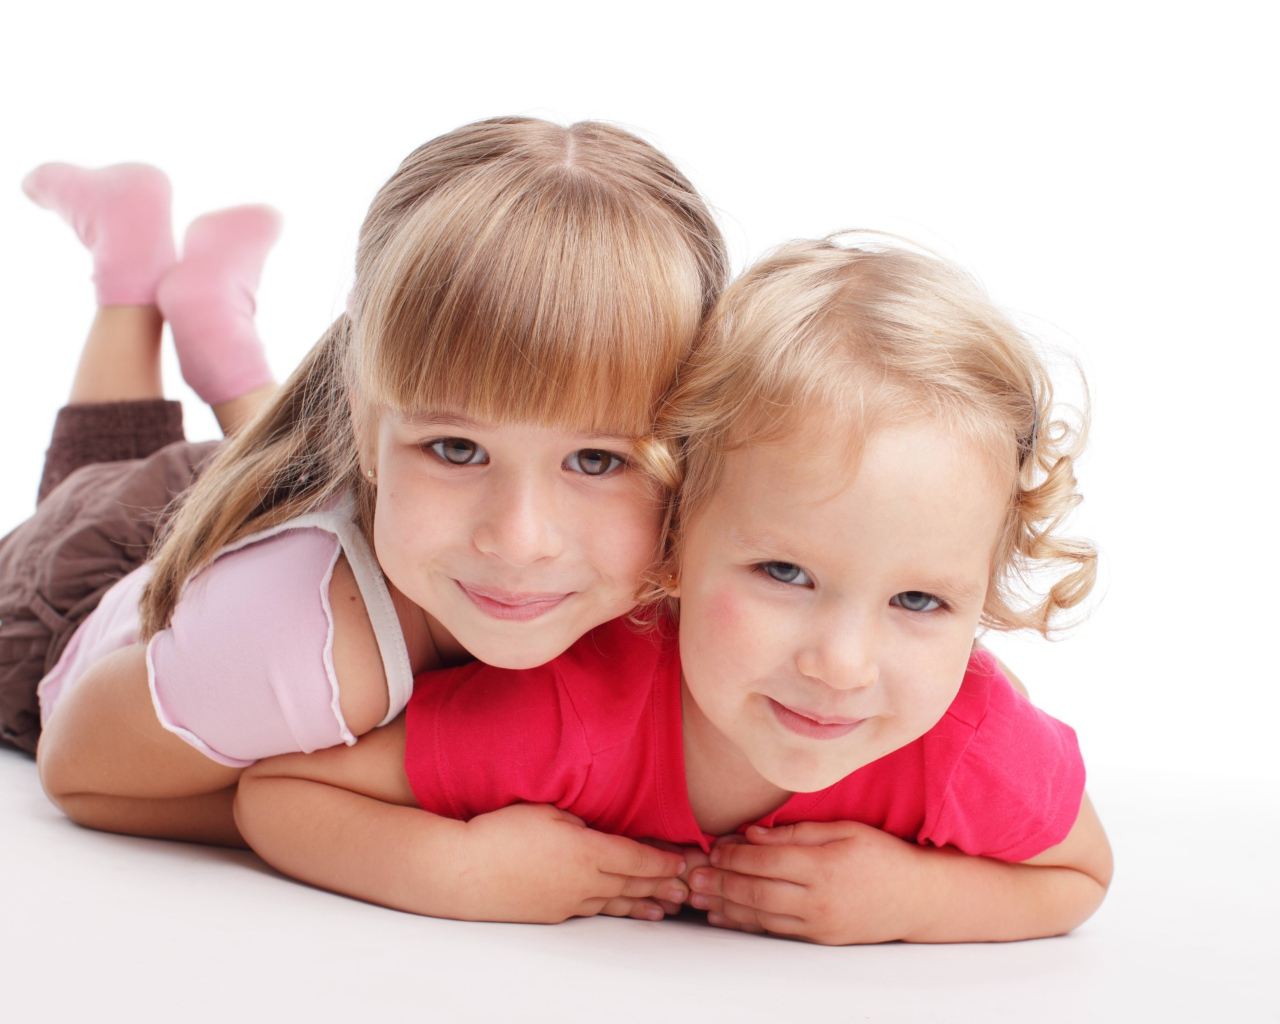 girls_sisters_smile_white_background_80157_1280x1024